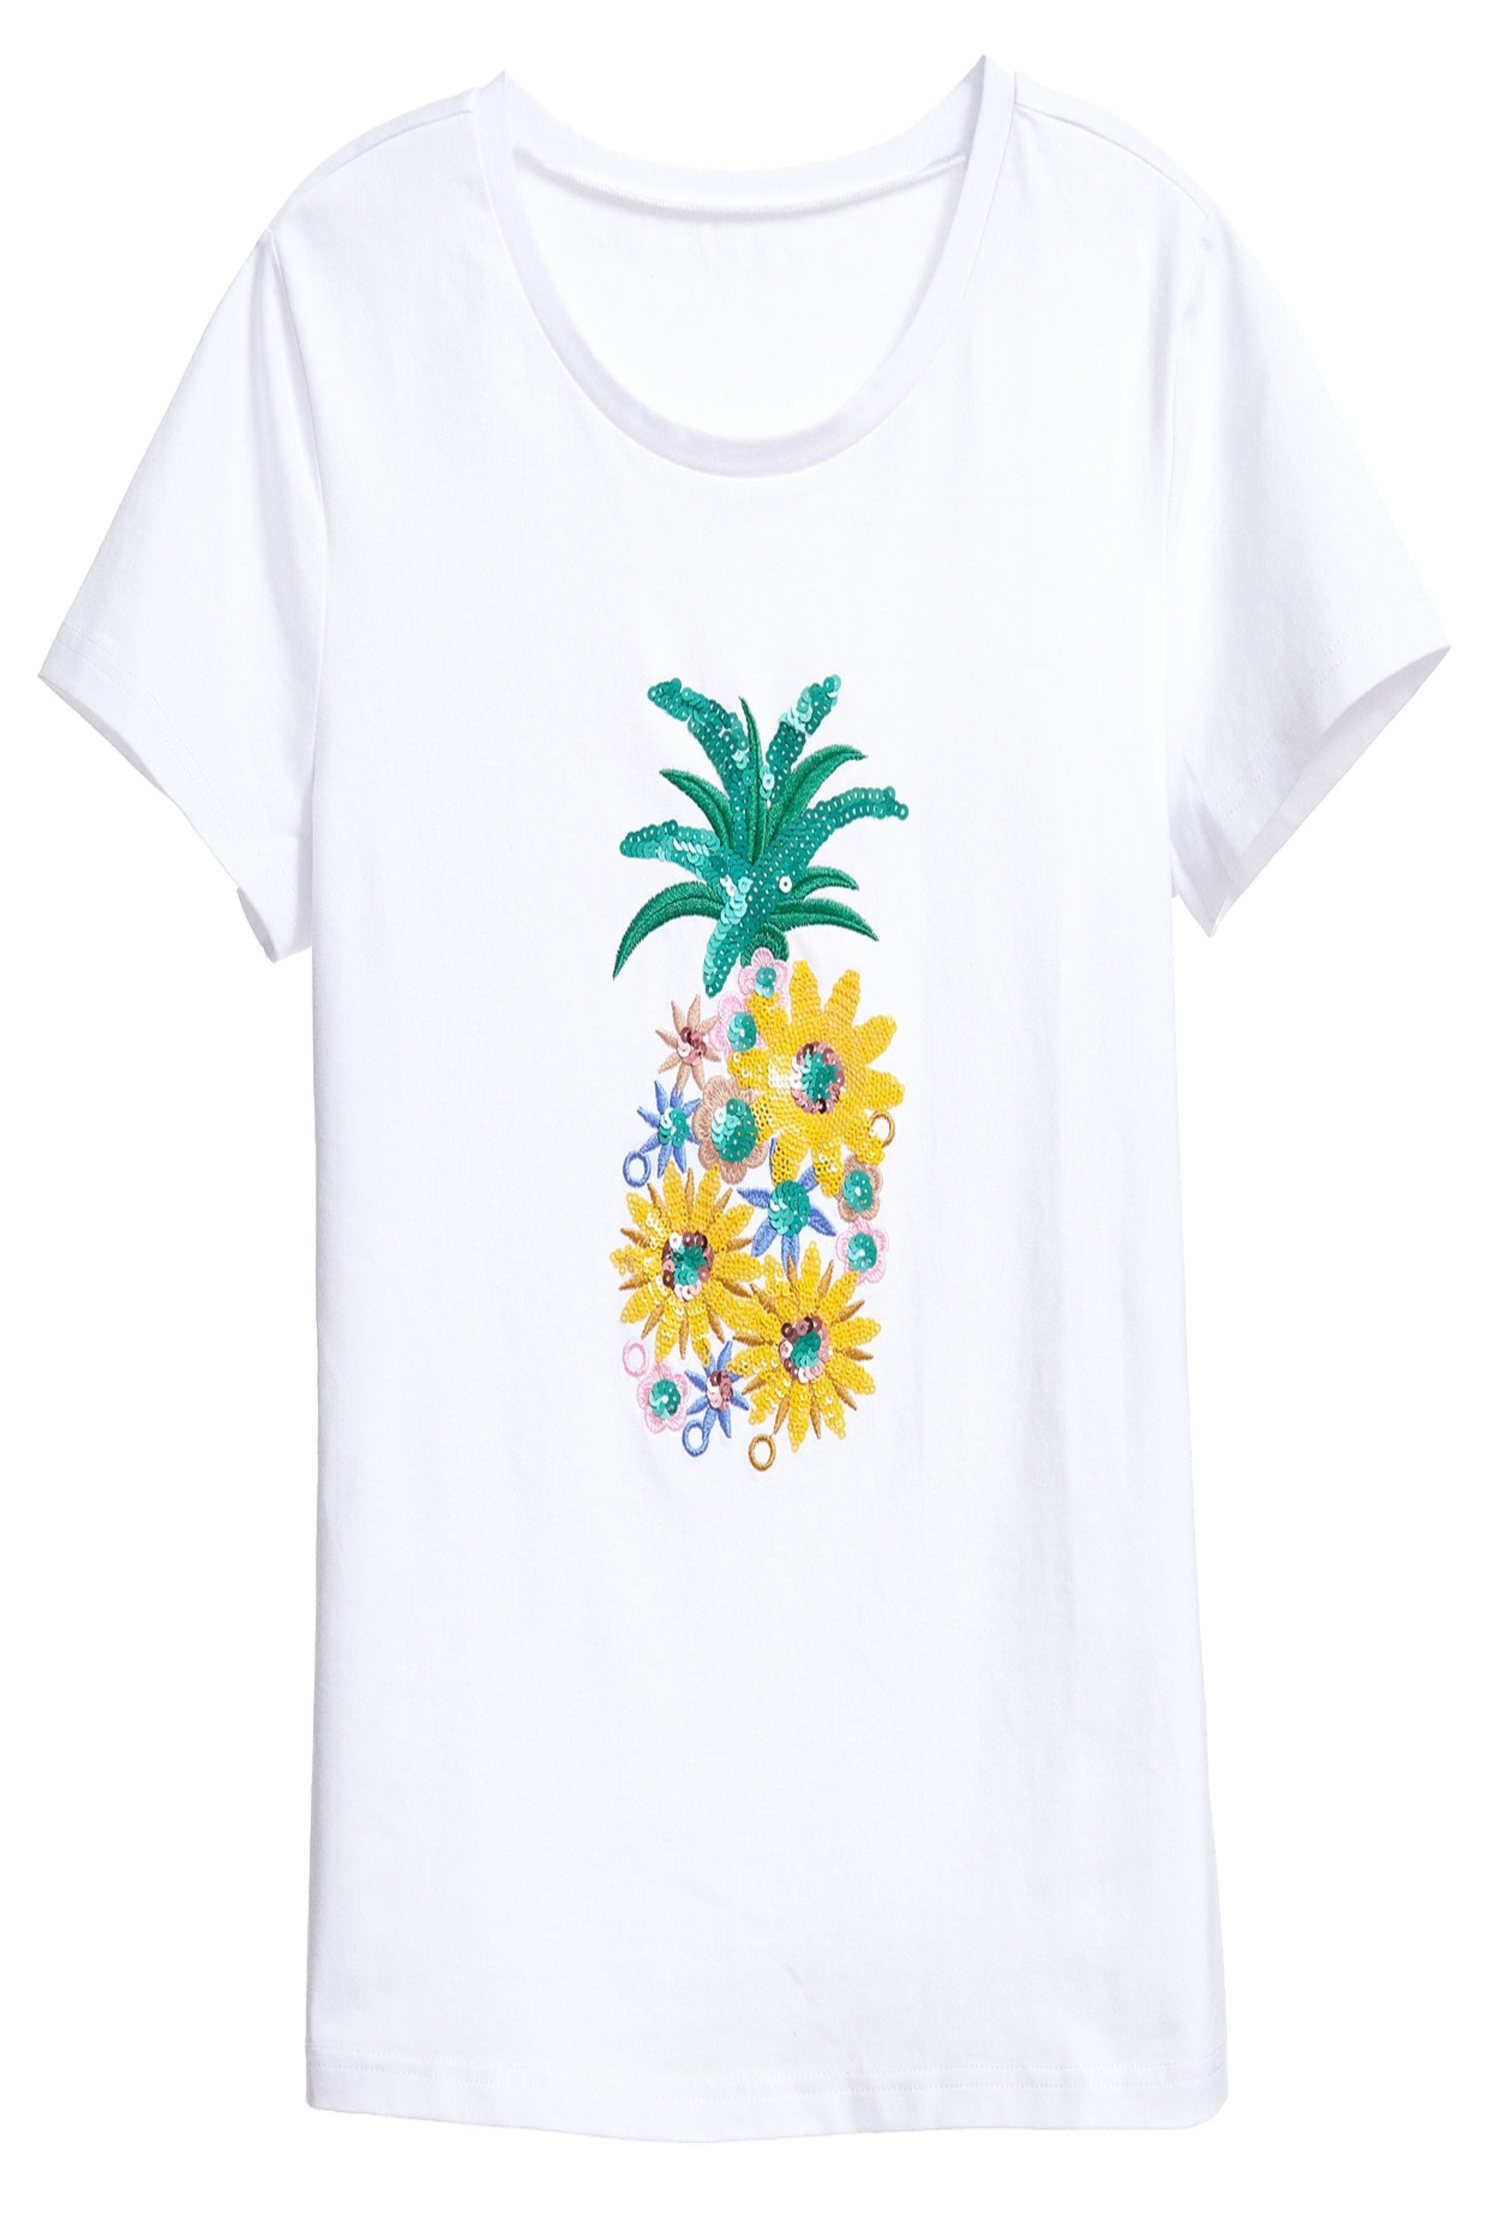 Small flower pineapple top